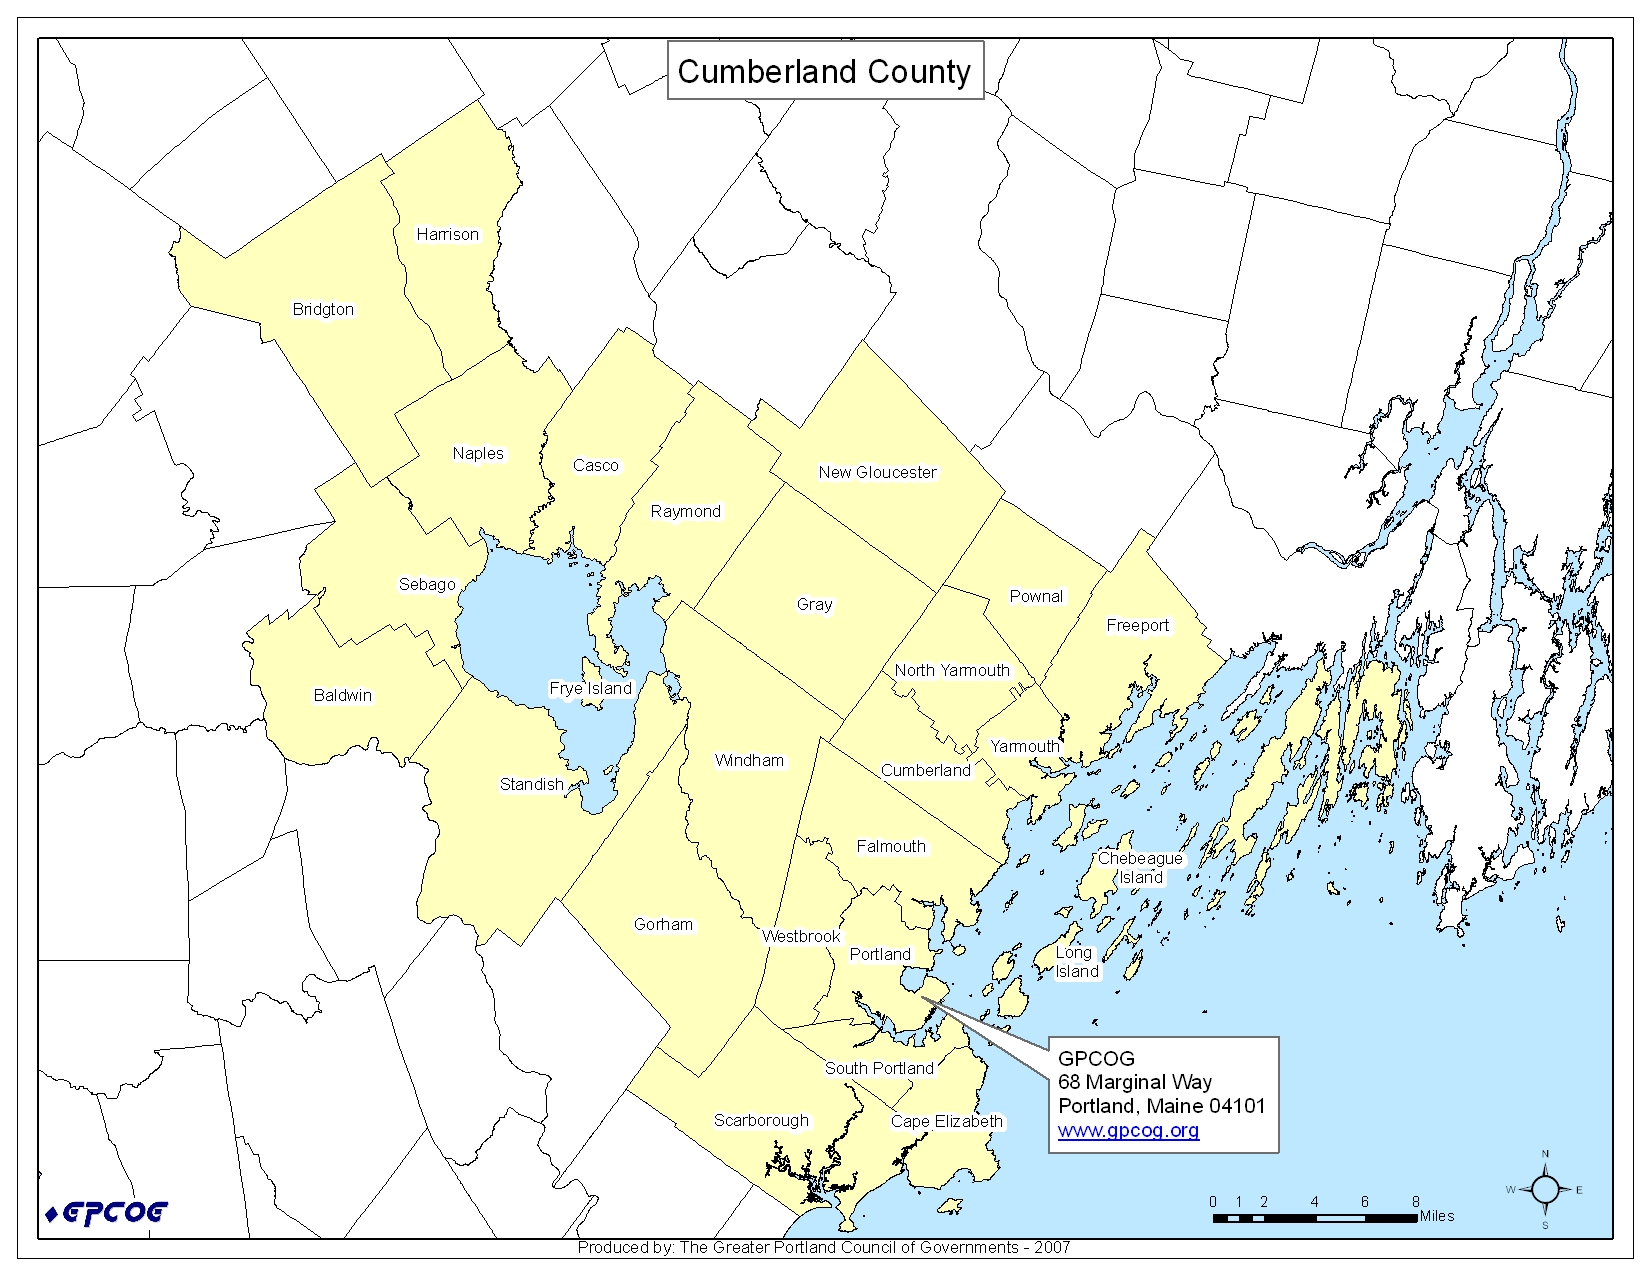 Cumberland County Map Cumberland Maine USA Mappery - Maine in usa map